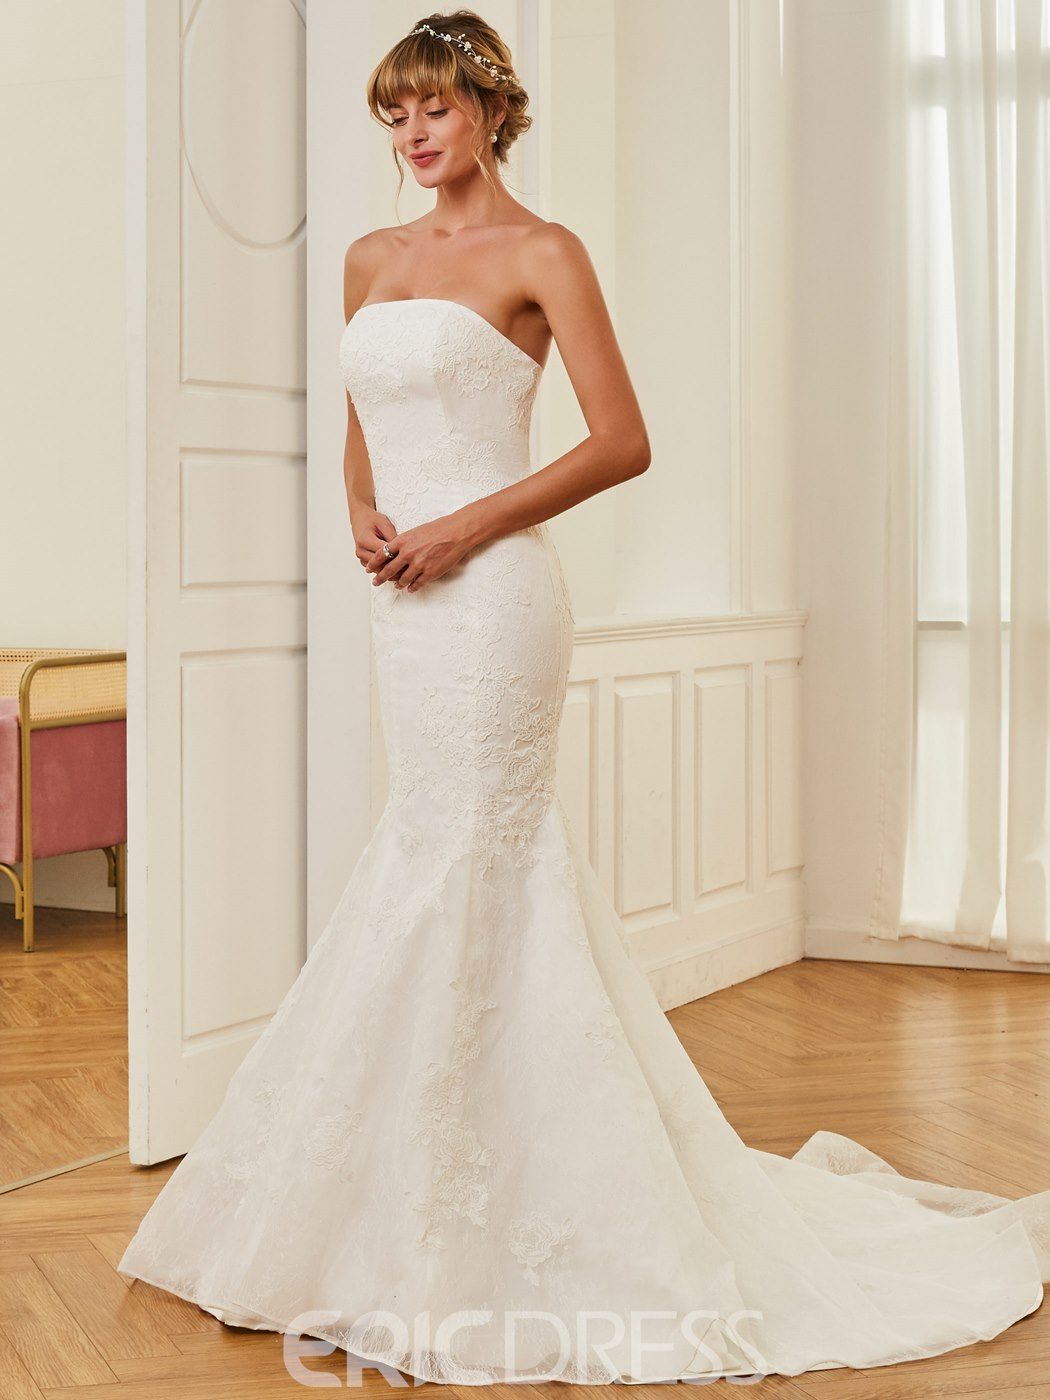 Ericdress Strapless Appliques Mermaid Wedding Dress